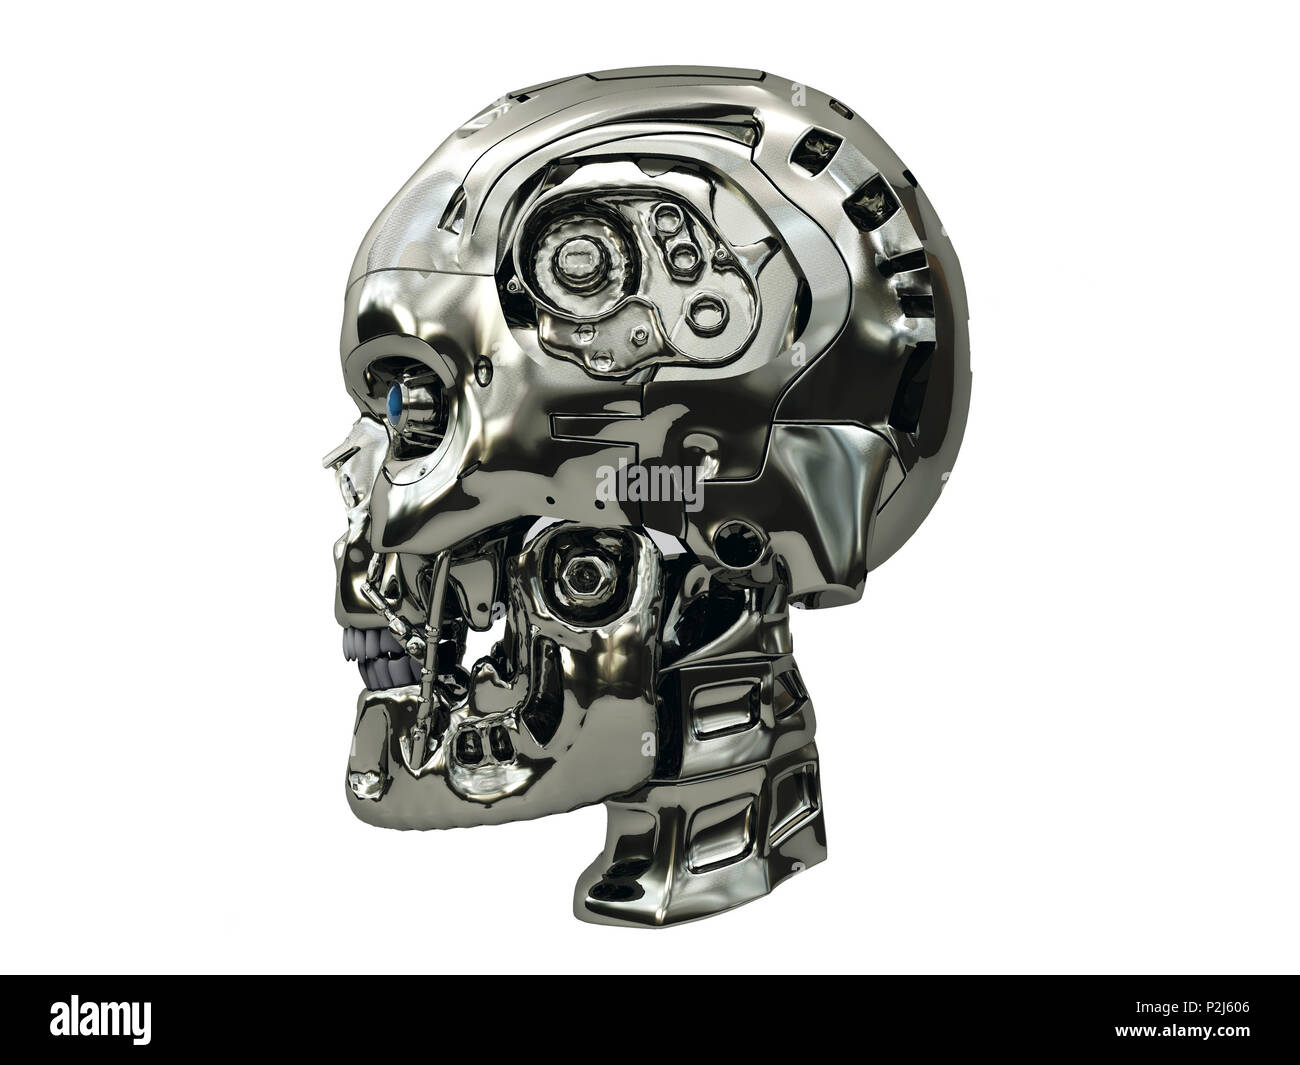 Robot skull with metallic surface and blue glowing eyes on side view, isolated on white background - Stock Image